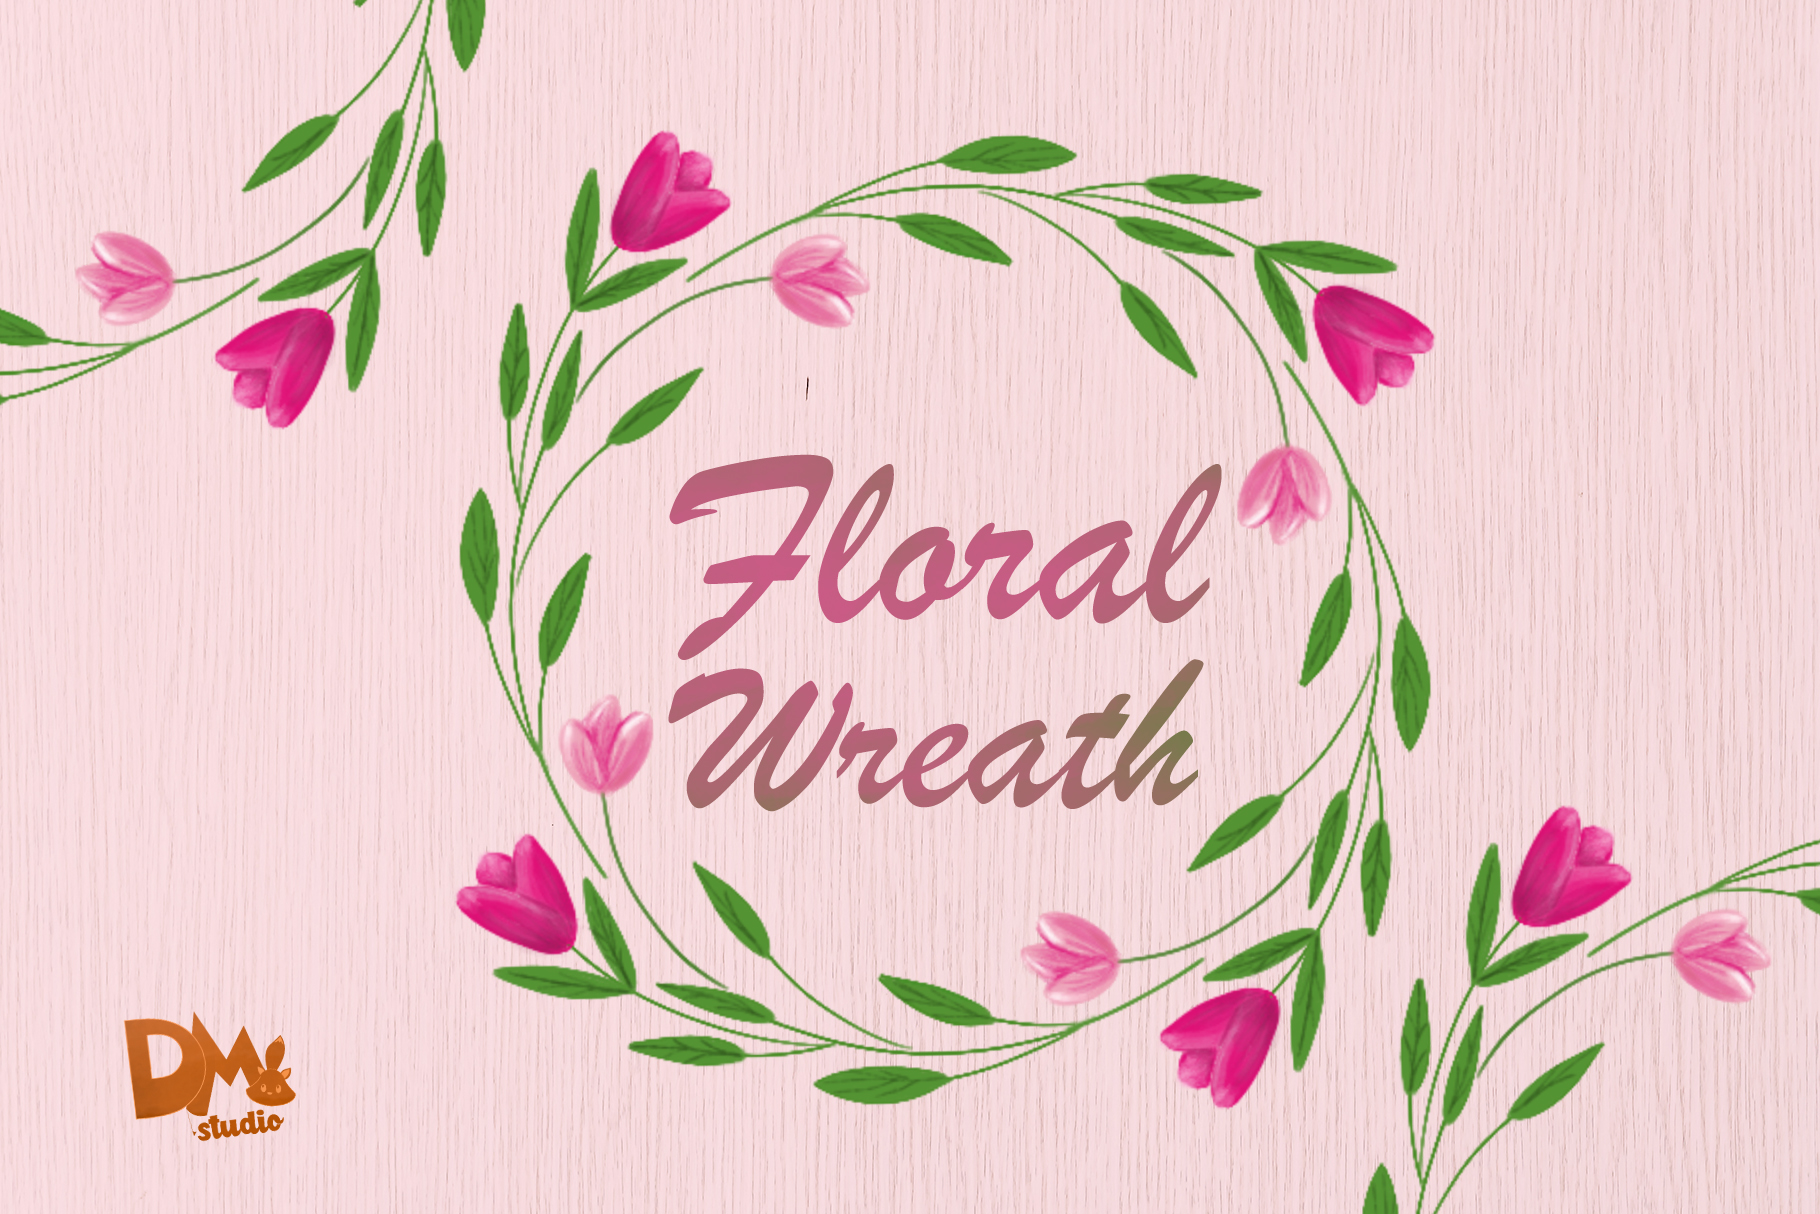 Download Free Pink Tulip Flower Wreath Graphic By Sharon Dmstudio for Cricut Explore, Silhouette and other cutting machines.